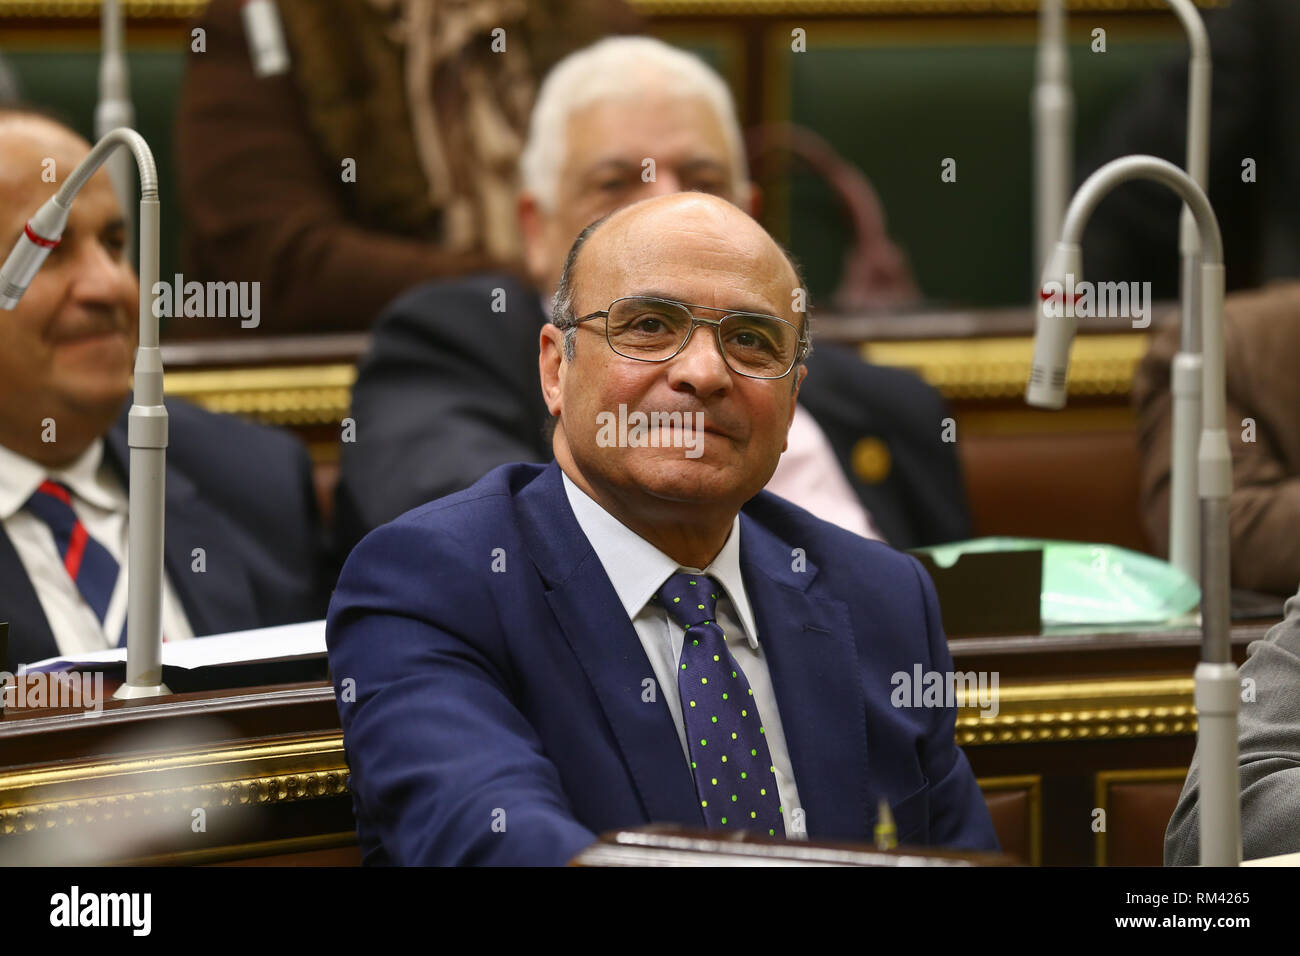 13 February 2019, Egypt, Cairo: Egypt's Minister of Legal and Parliamentary Affairs Omar Marwan attends a plenary session of the Egyptian Parliament held to deliberate the proposed constitutional amendments that will increase the country's President term in office from four to six years. The Parliament members will vote later on the amendments before referring it to the Legislative and Constitutional Affairs Committee to be discussed in detail and to be finalized before being referred to the president to be put up for a public vote in a national referendum. Photo: Lobna Tarek/dpa - Stock Image